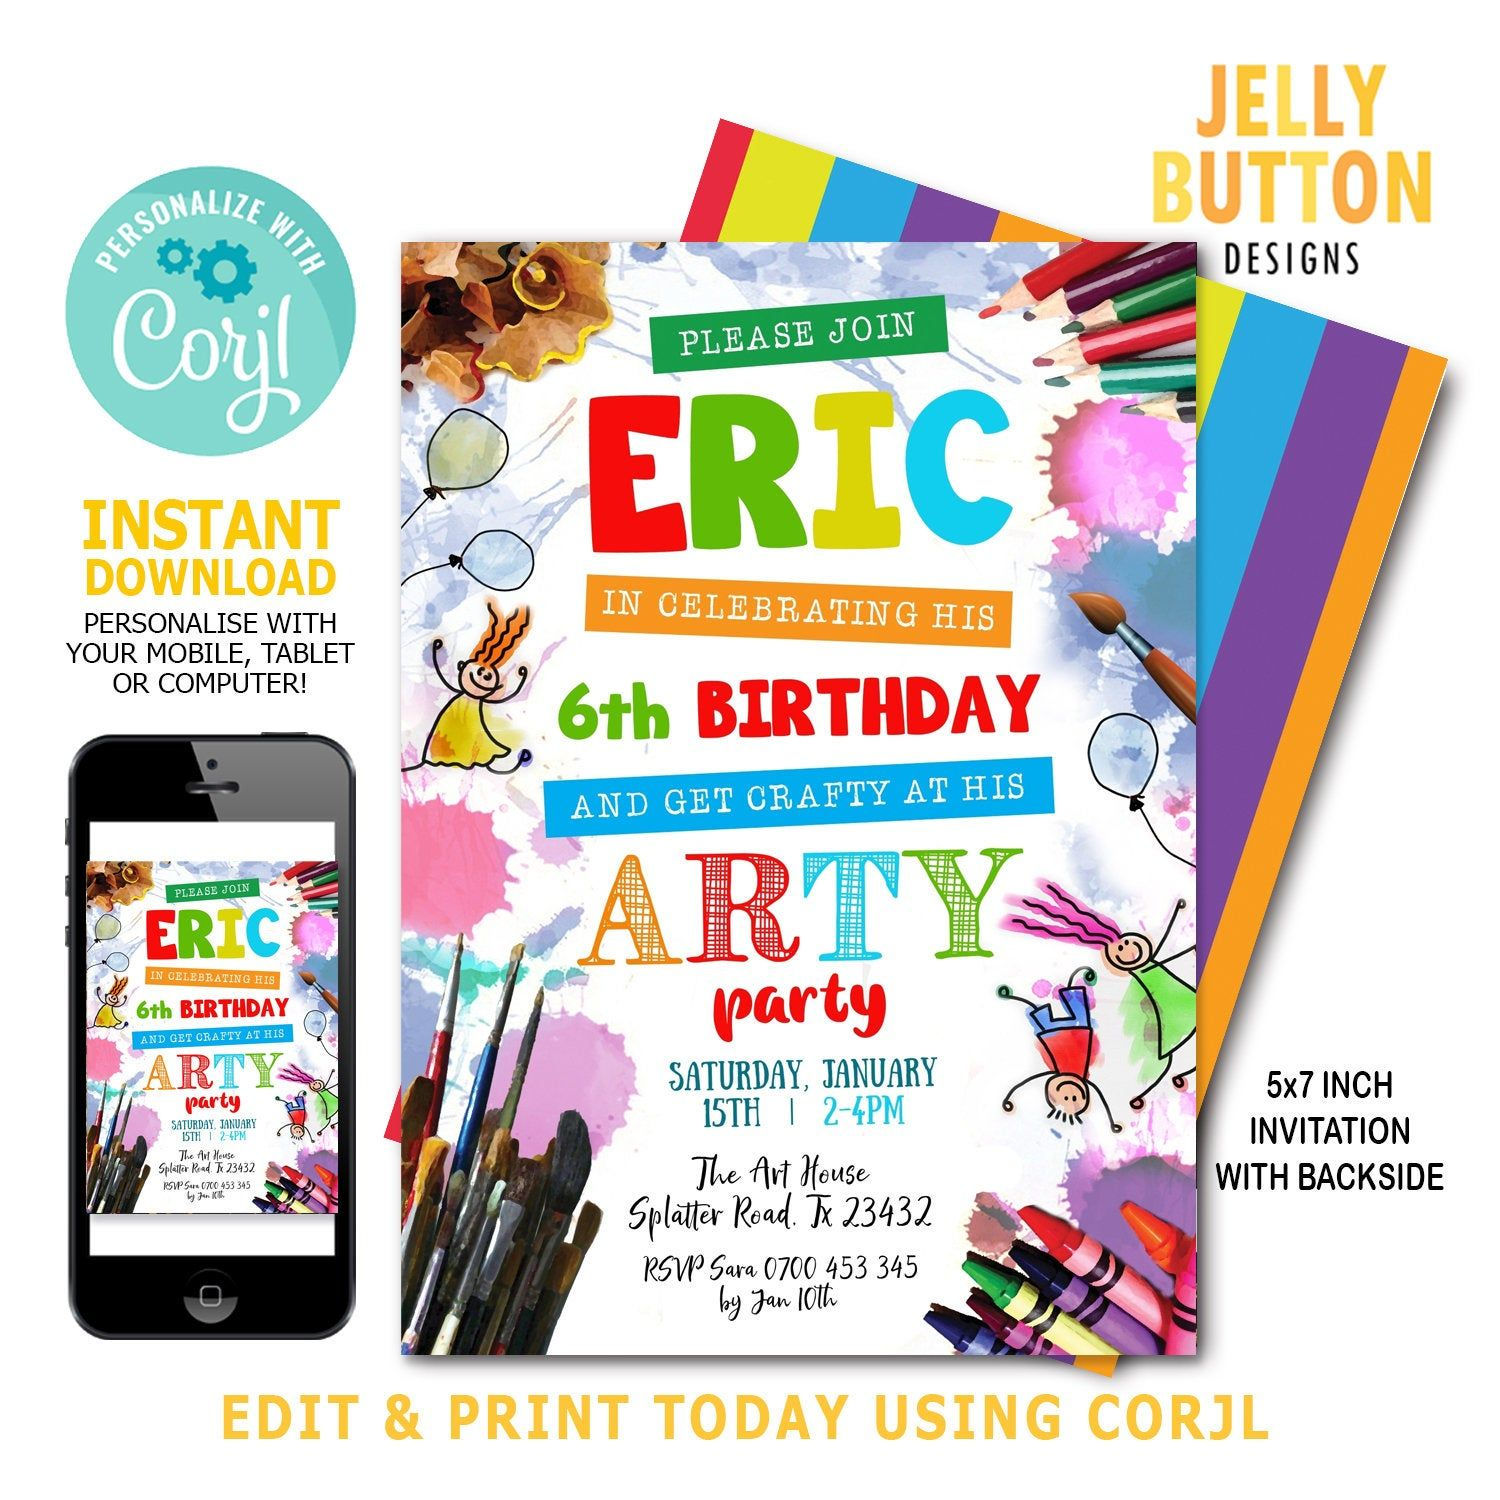 16+ Arts and crafts birthday party invitations ideas in 2021